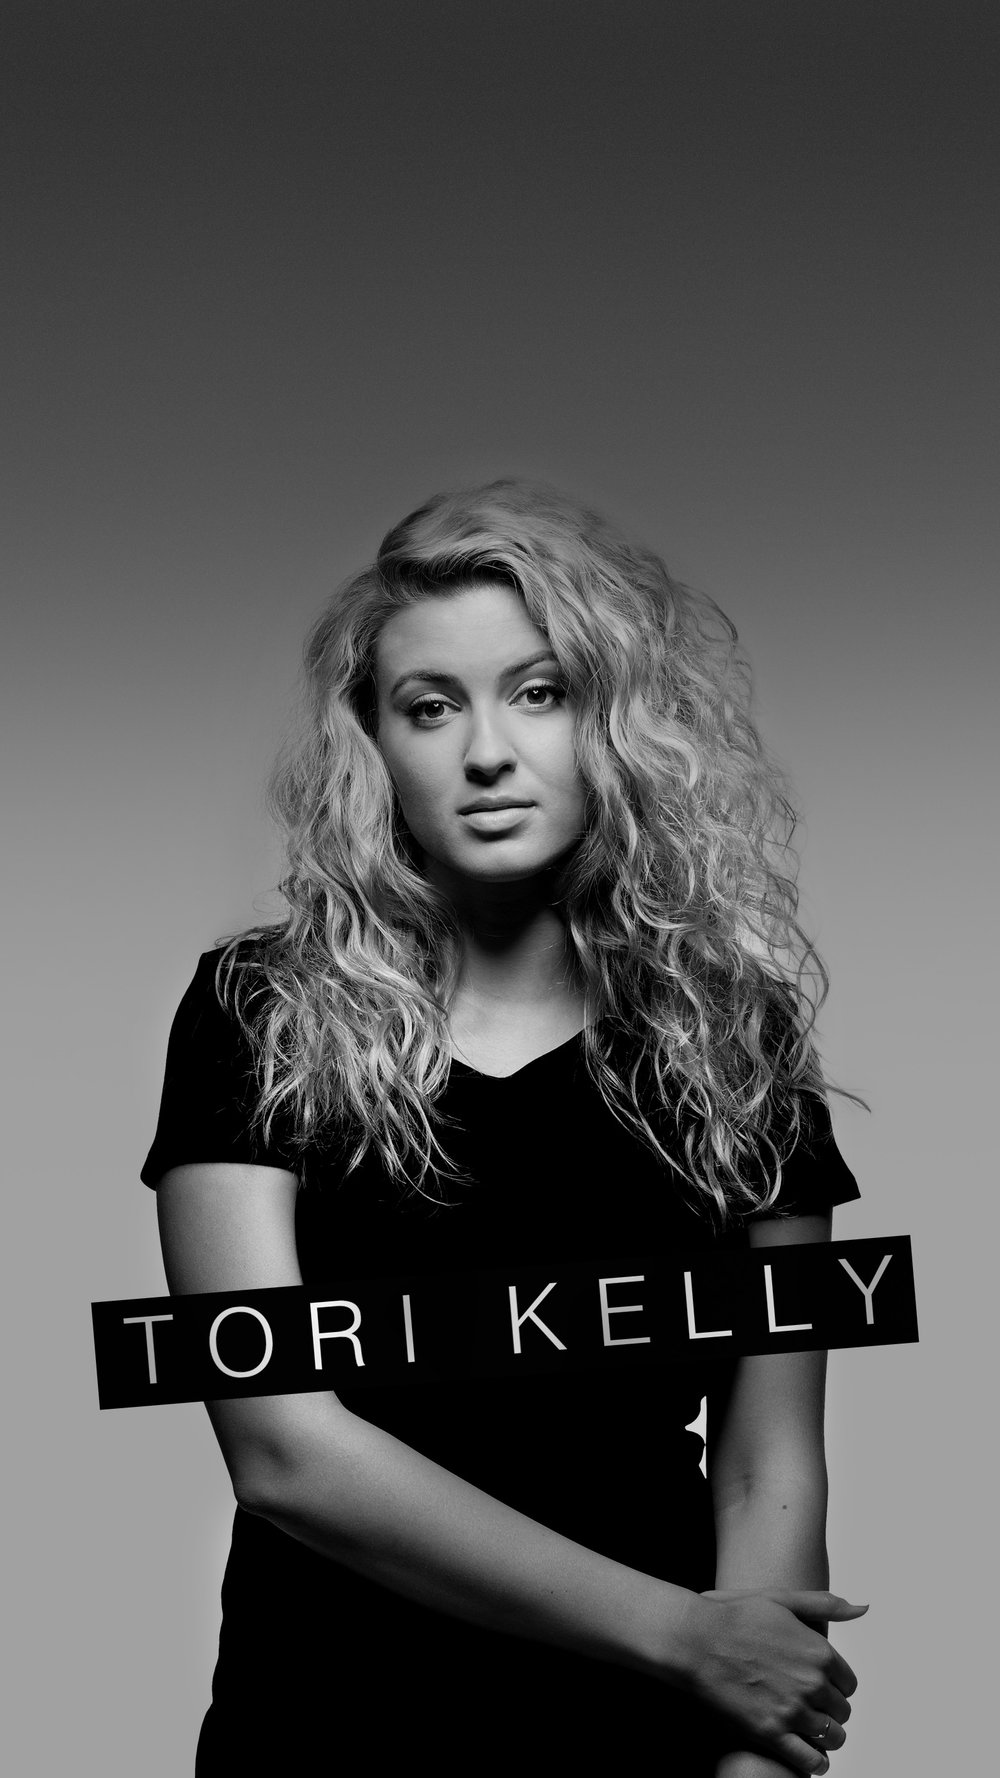 torikelly-lockscreen14.jpg